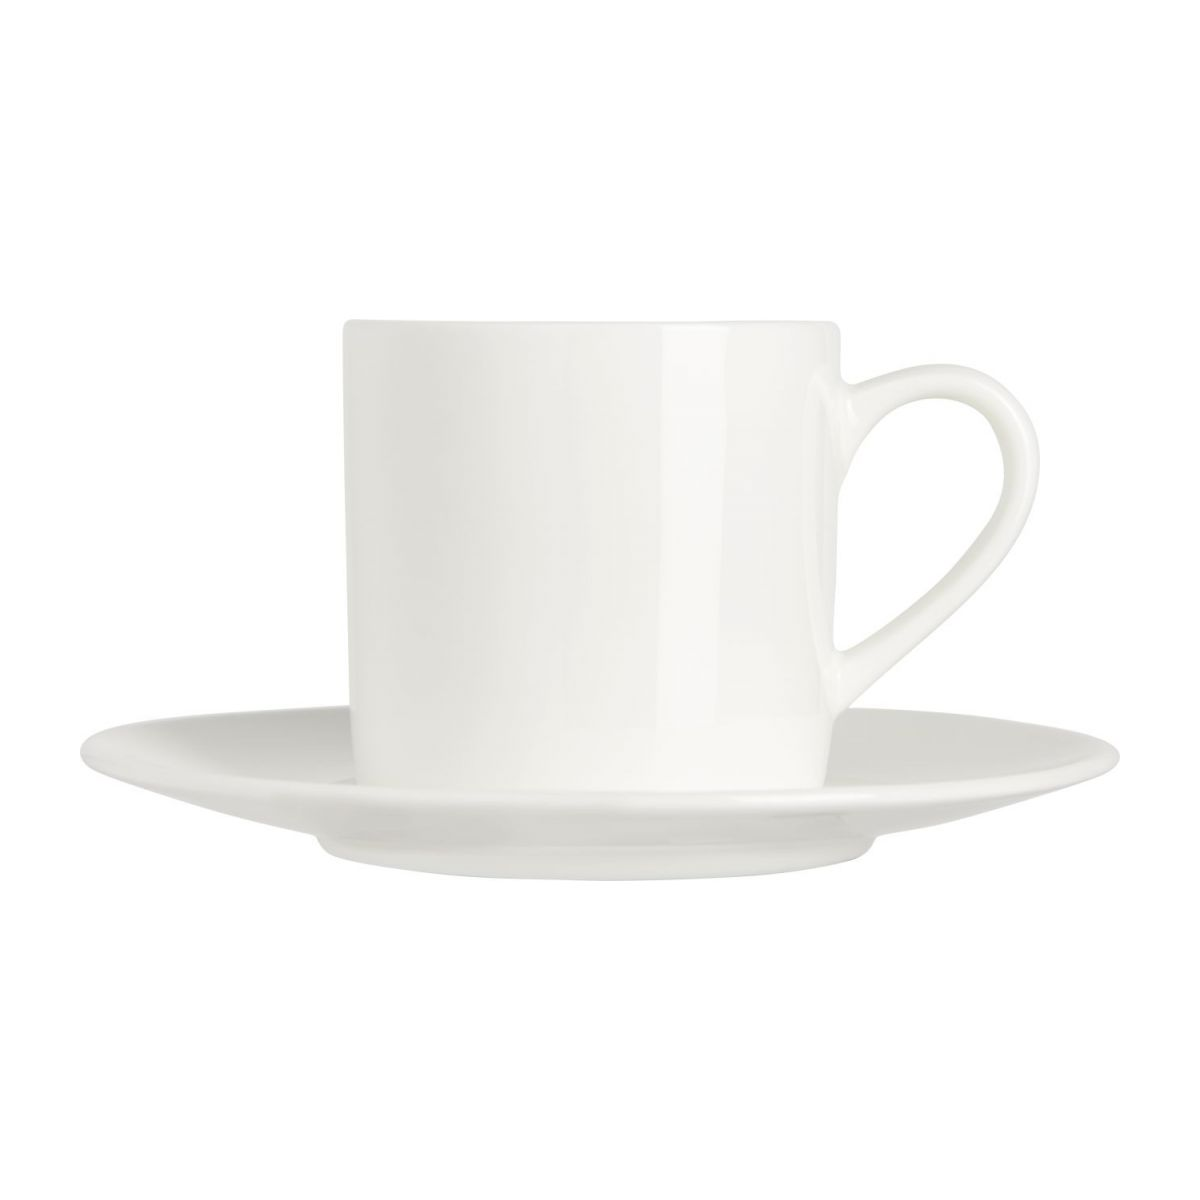 Coffee cup and saucer n°4